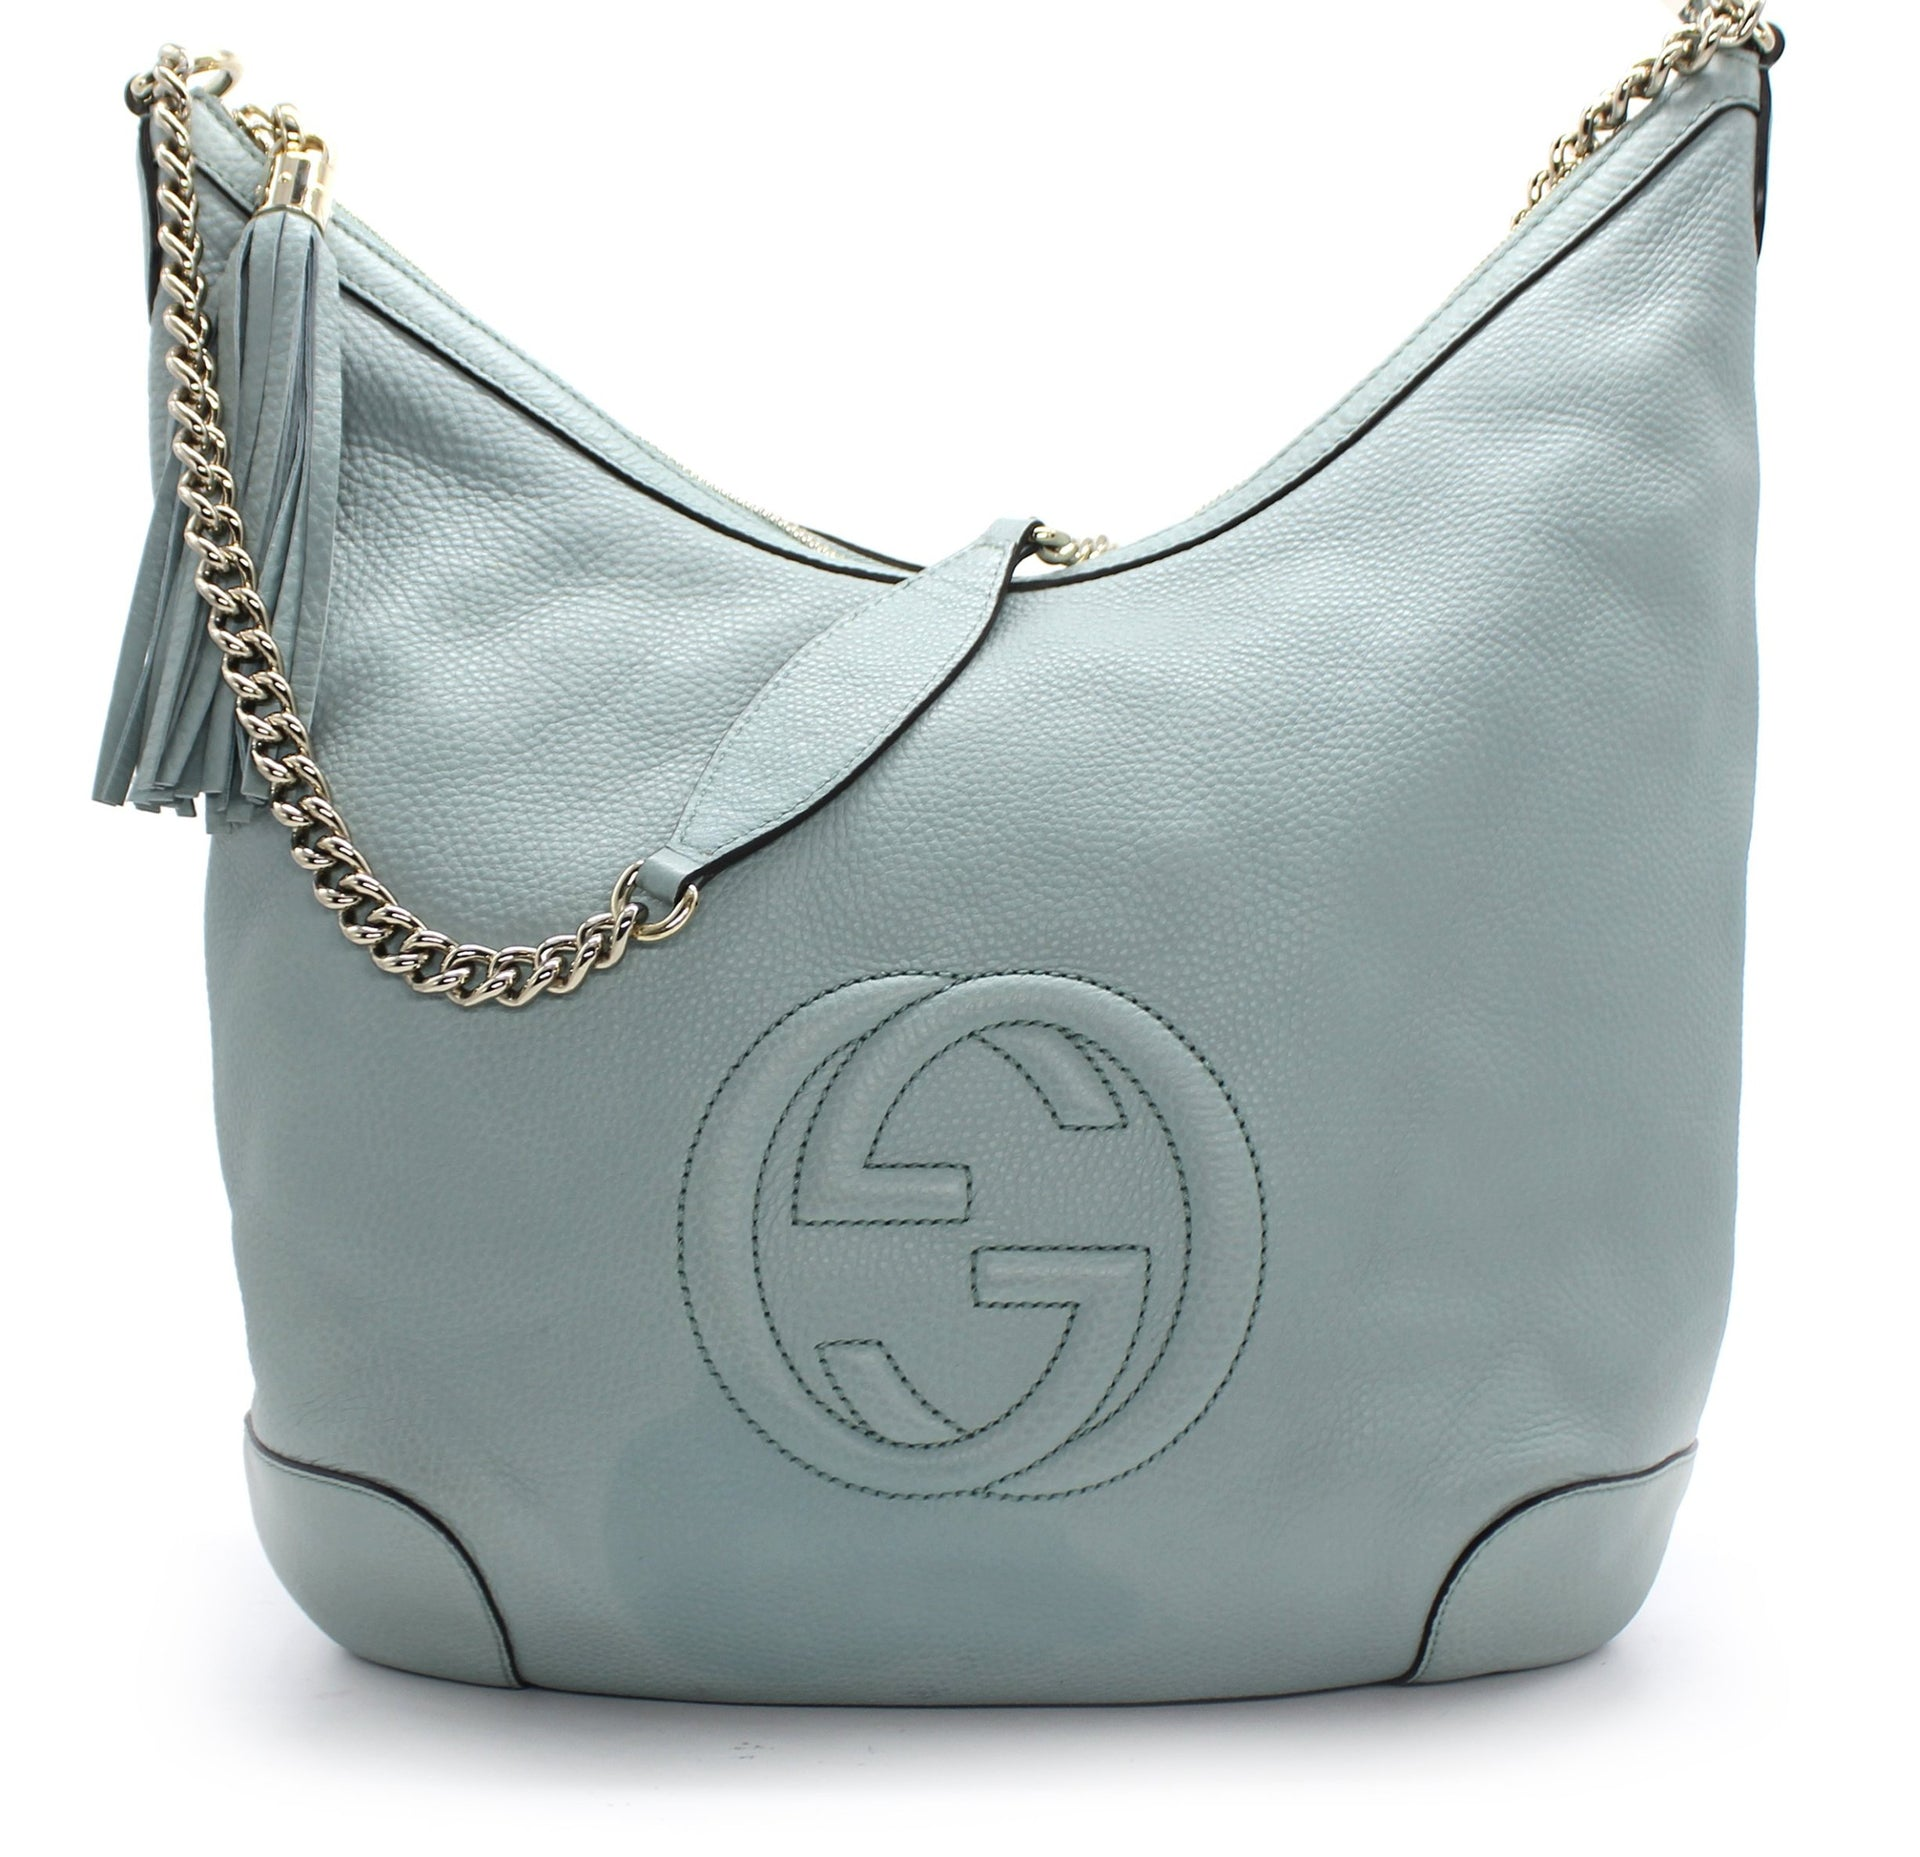 Leather Medium Soho Chain Shoulder Bag